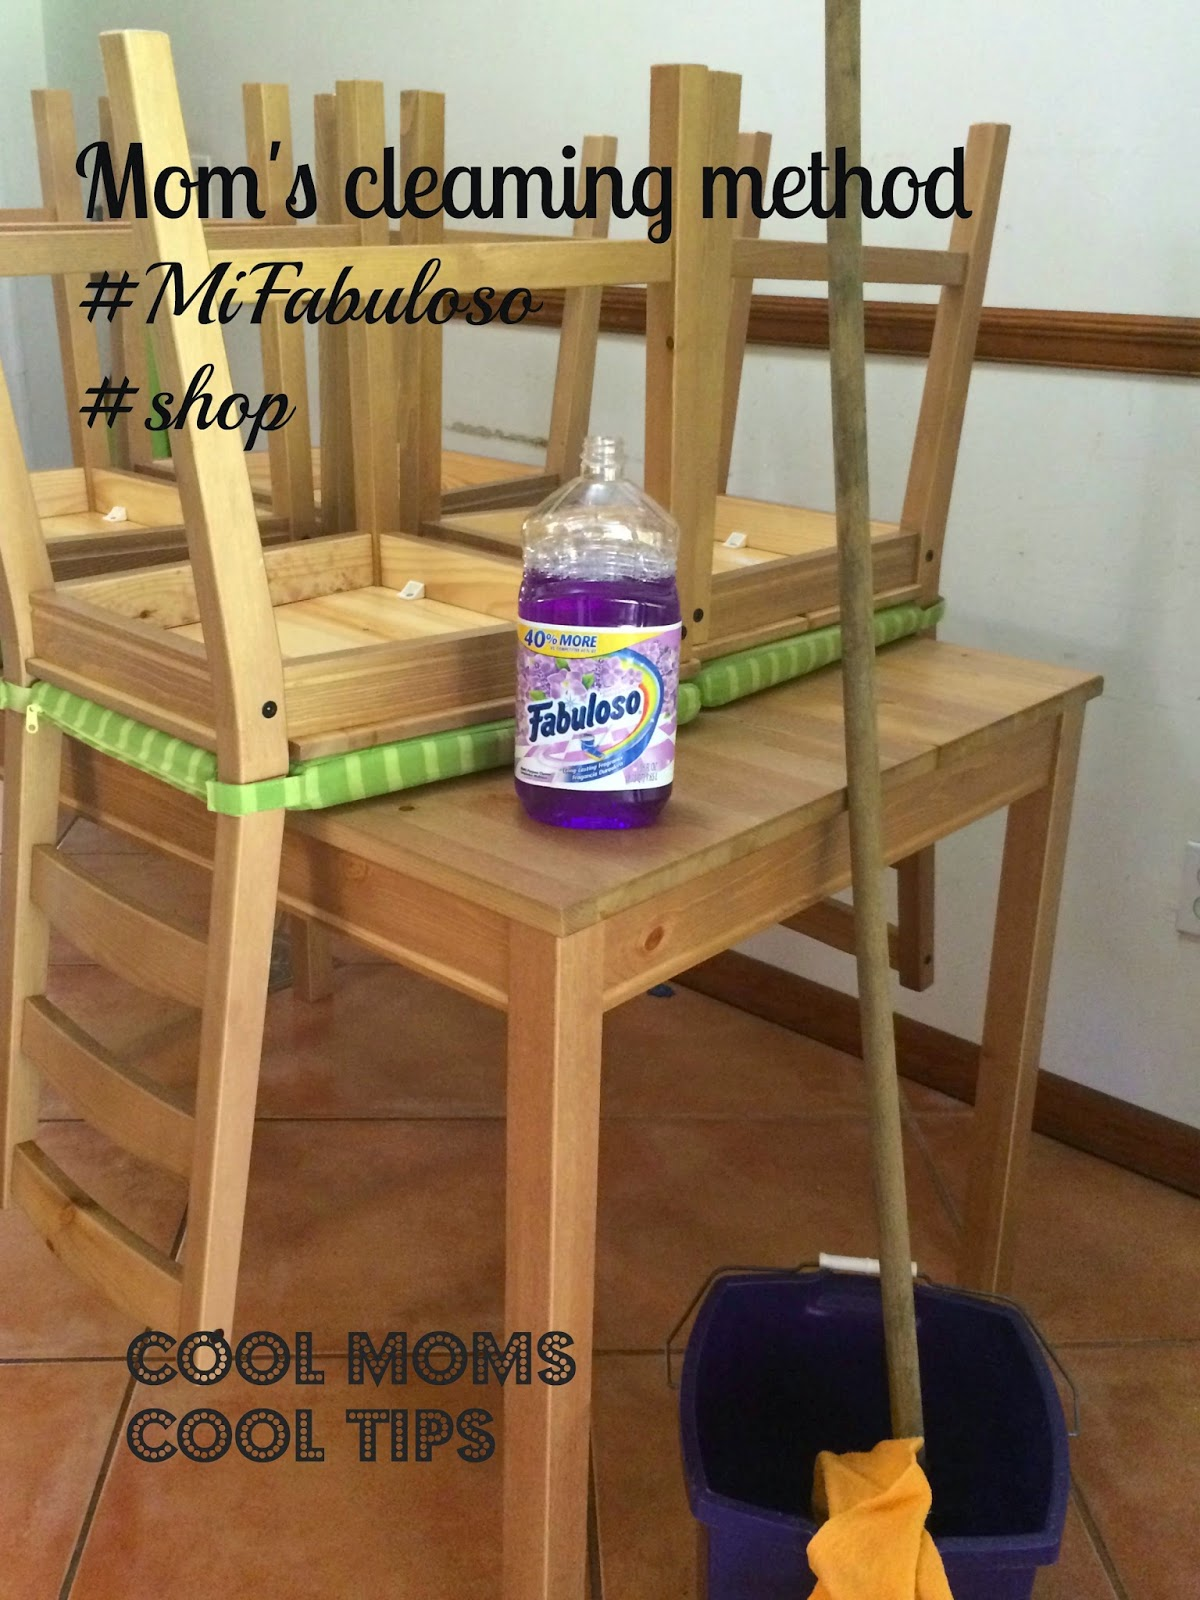 Cool Moms Cool Tips #MiFabuloso #shop #CollectiveBias mom's cleaning method